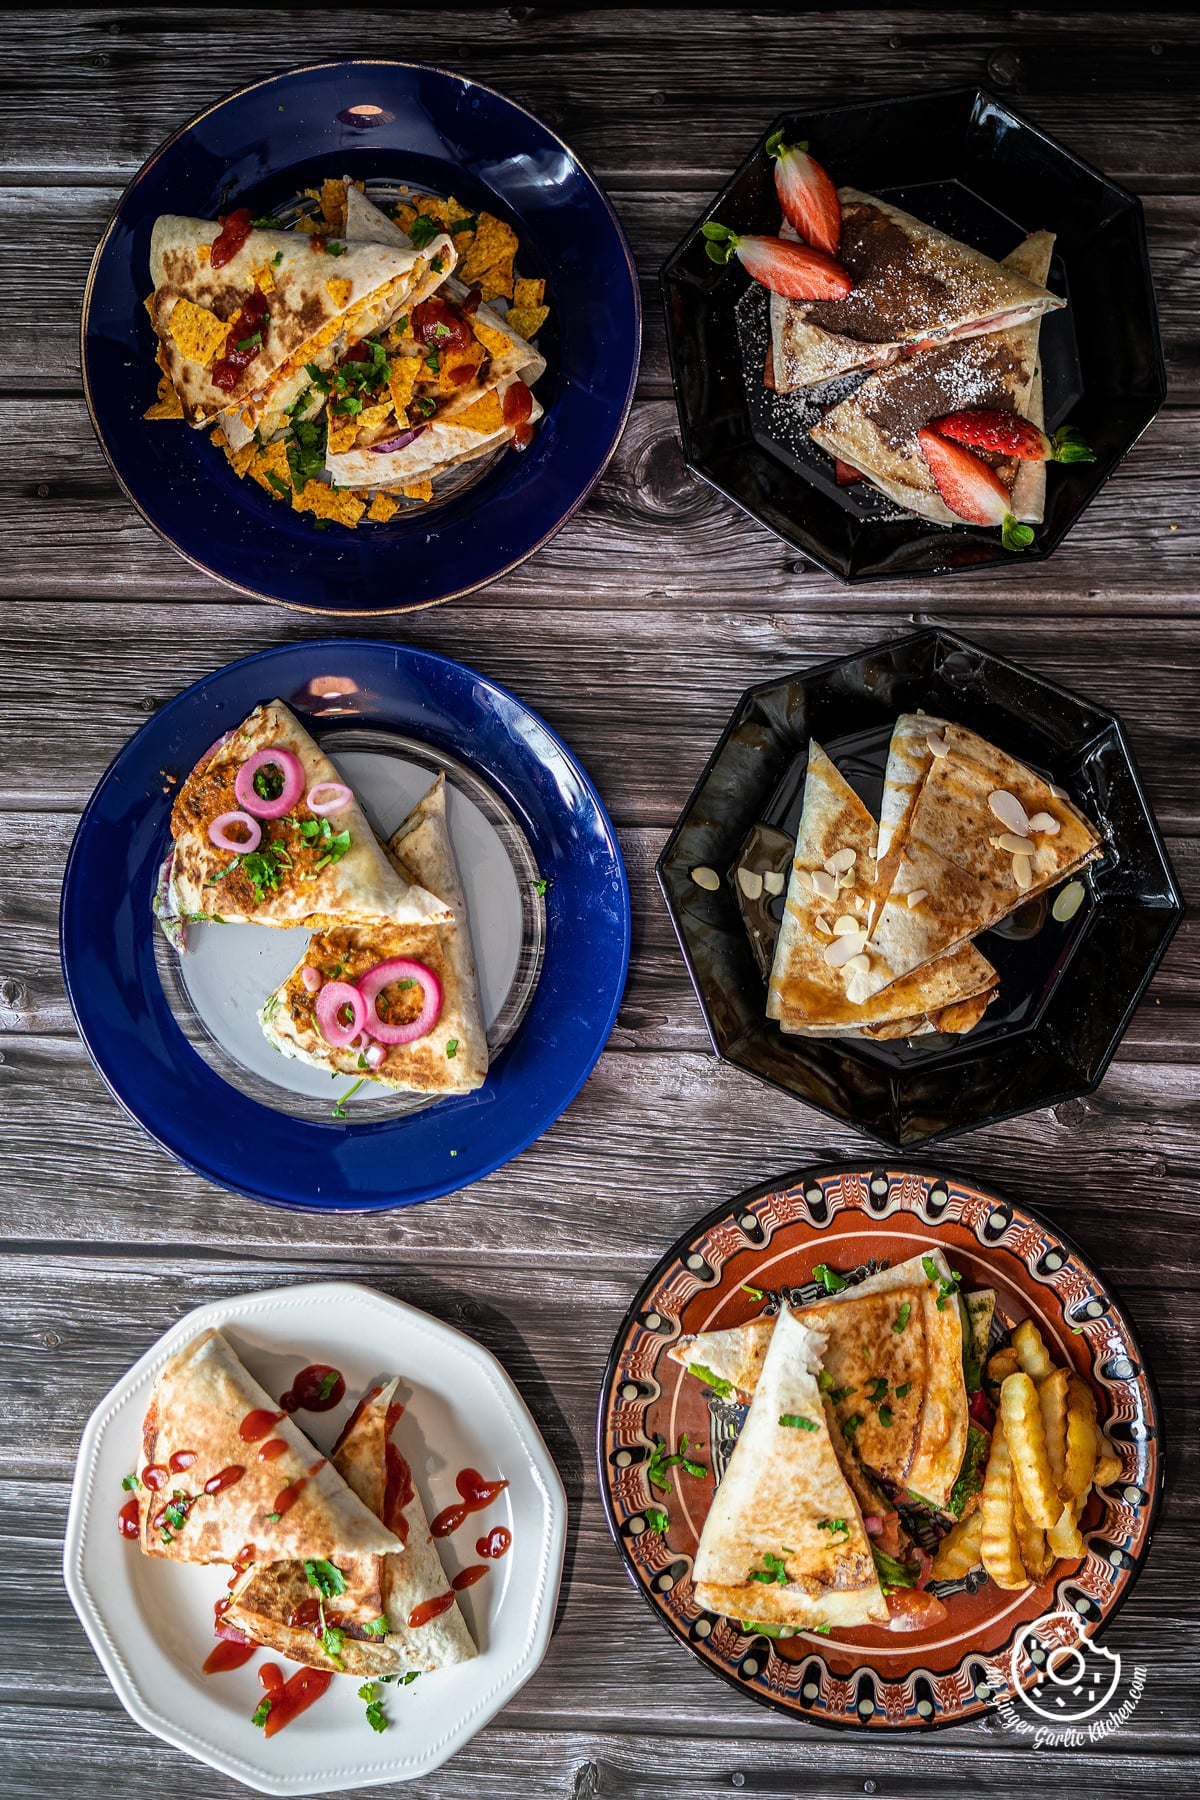 6 tortilla wraps on a wooden table